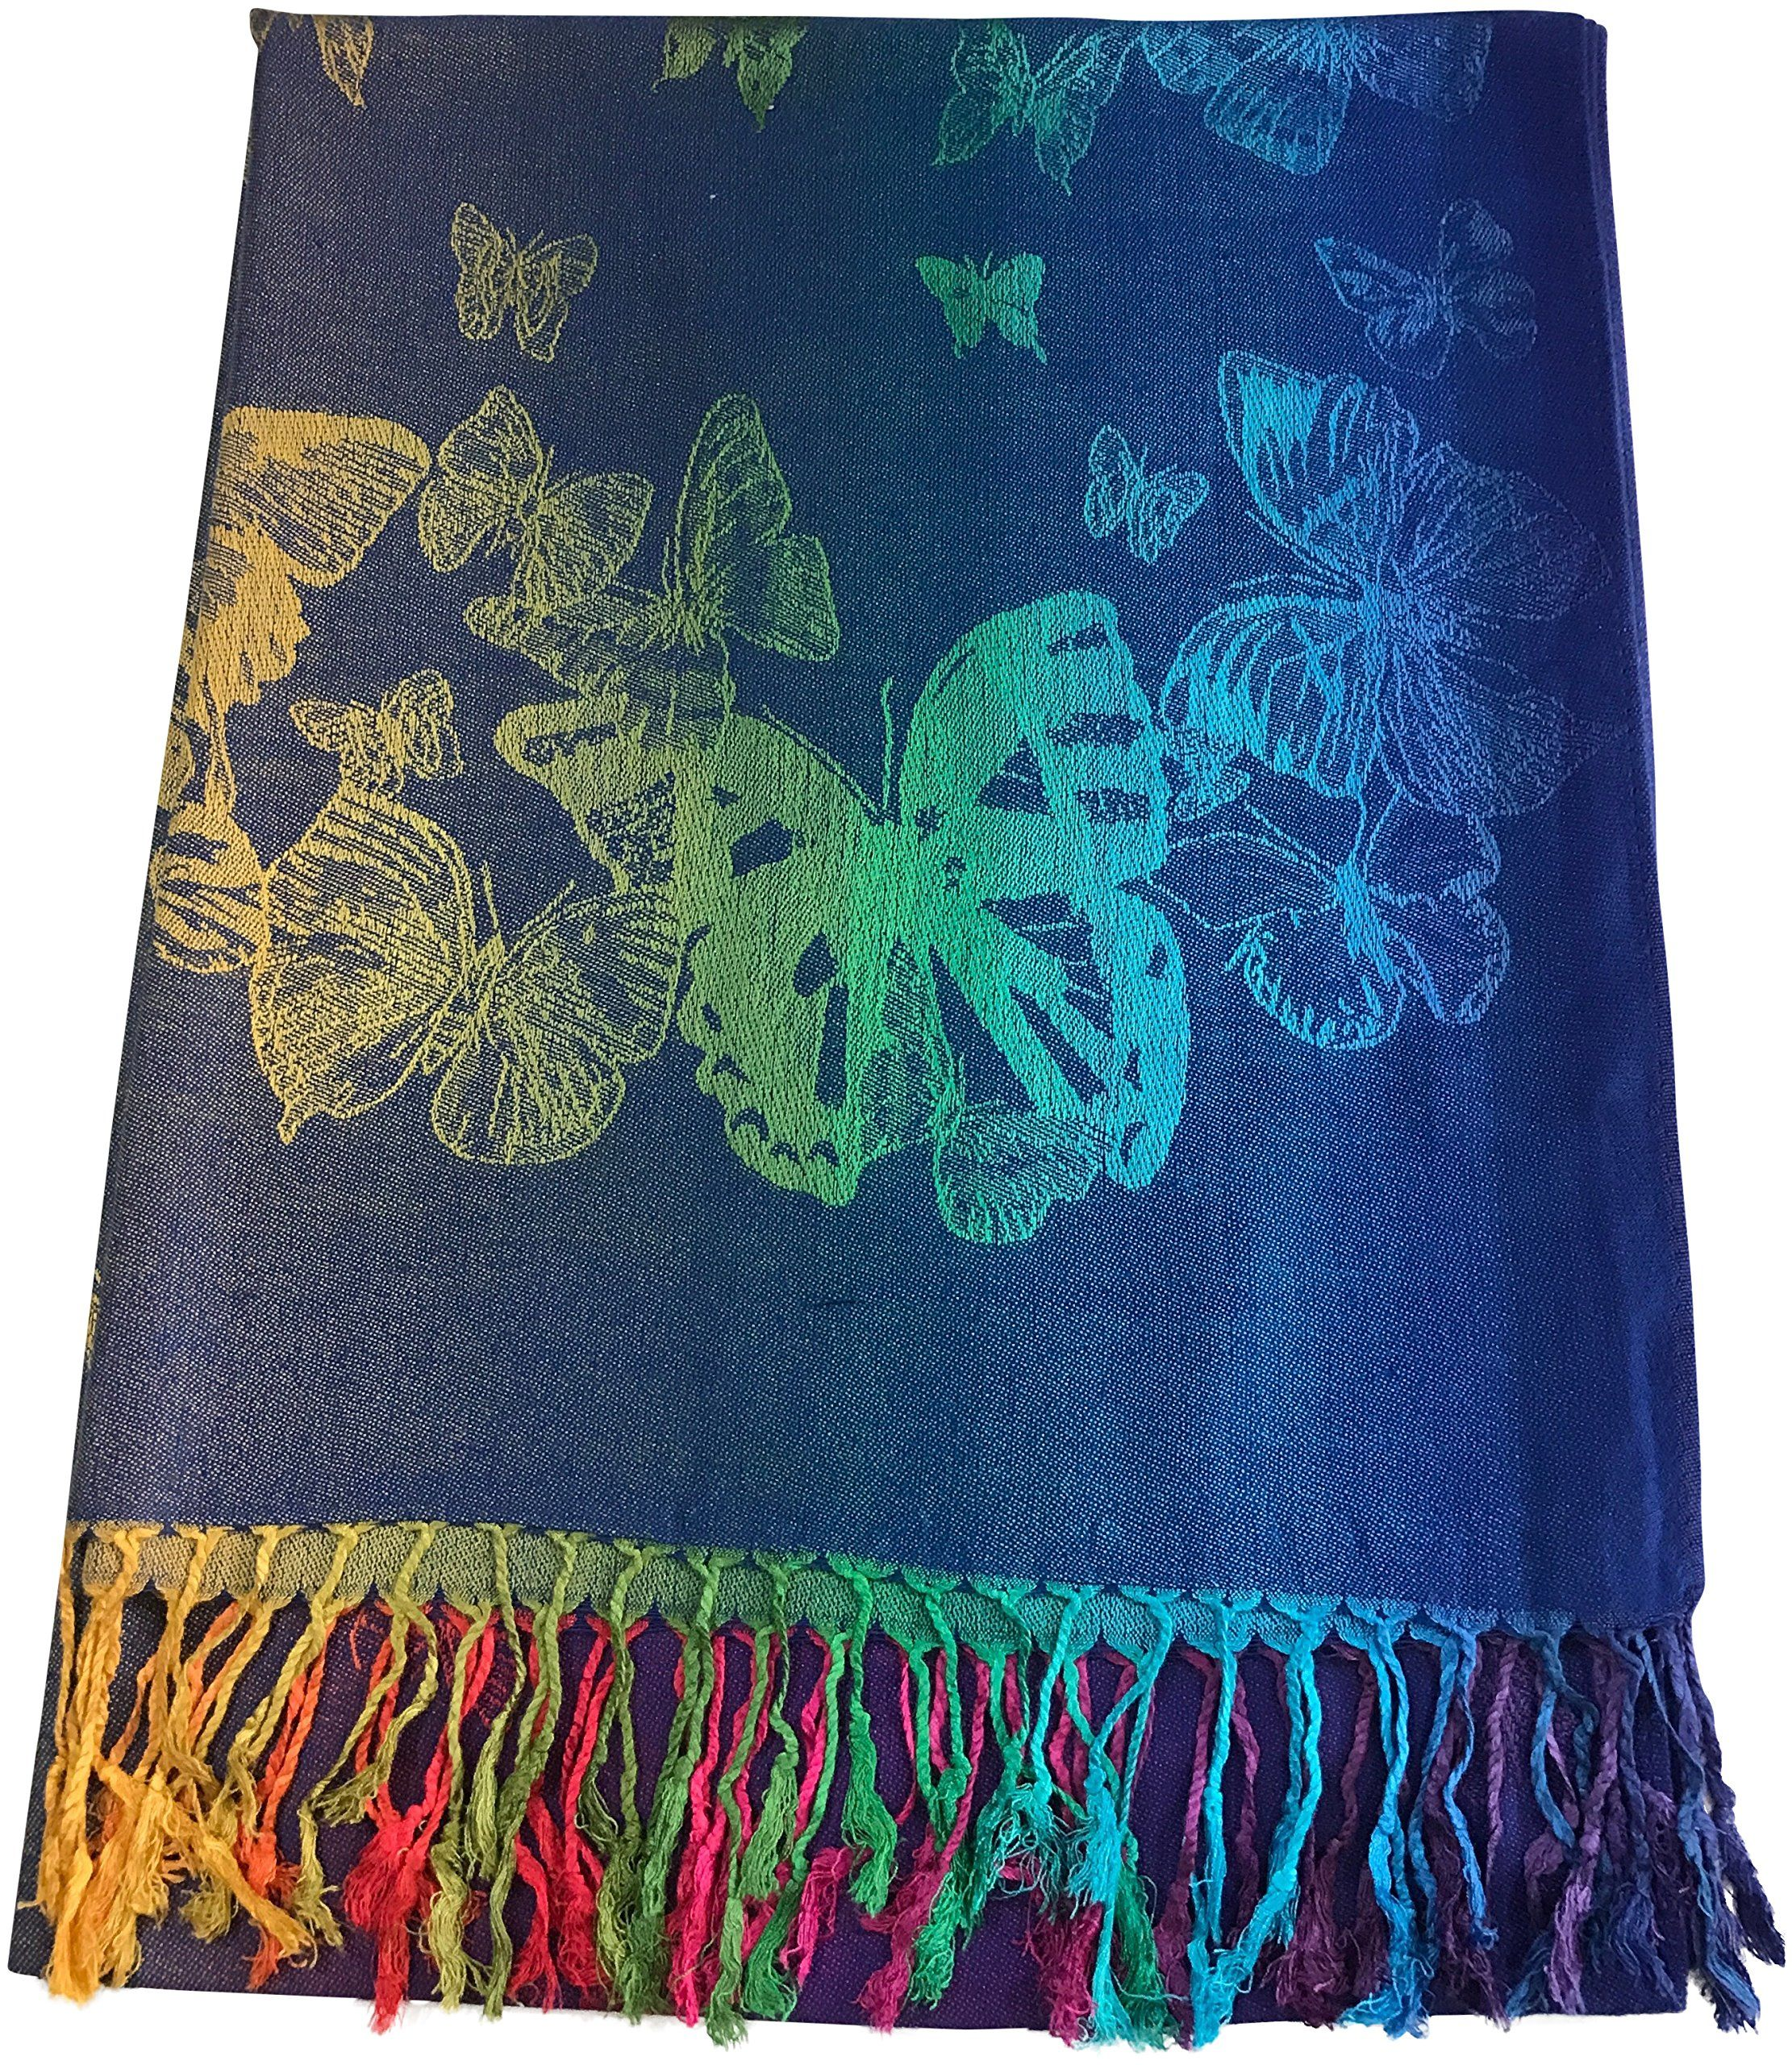 Royal Blue & Purple Butterfly Design Shawl Pashmina Scarf Wrap Stole Throw CJ Apparel NEW